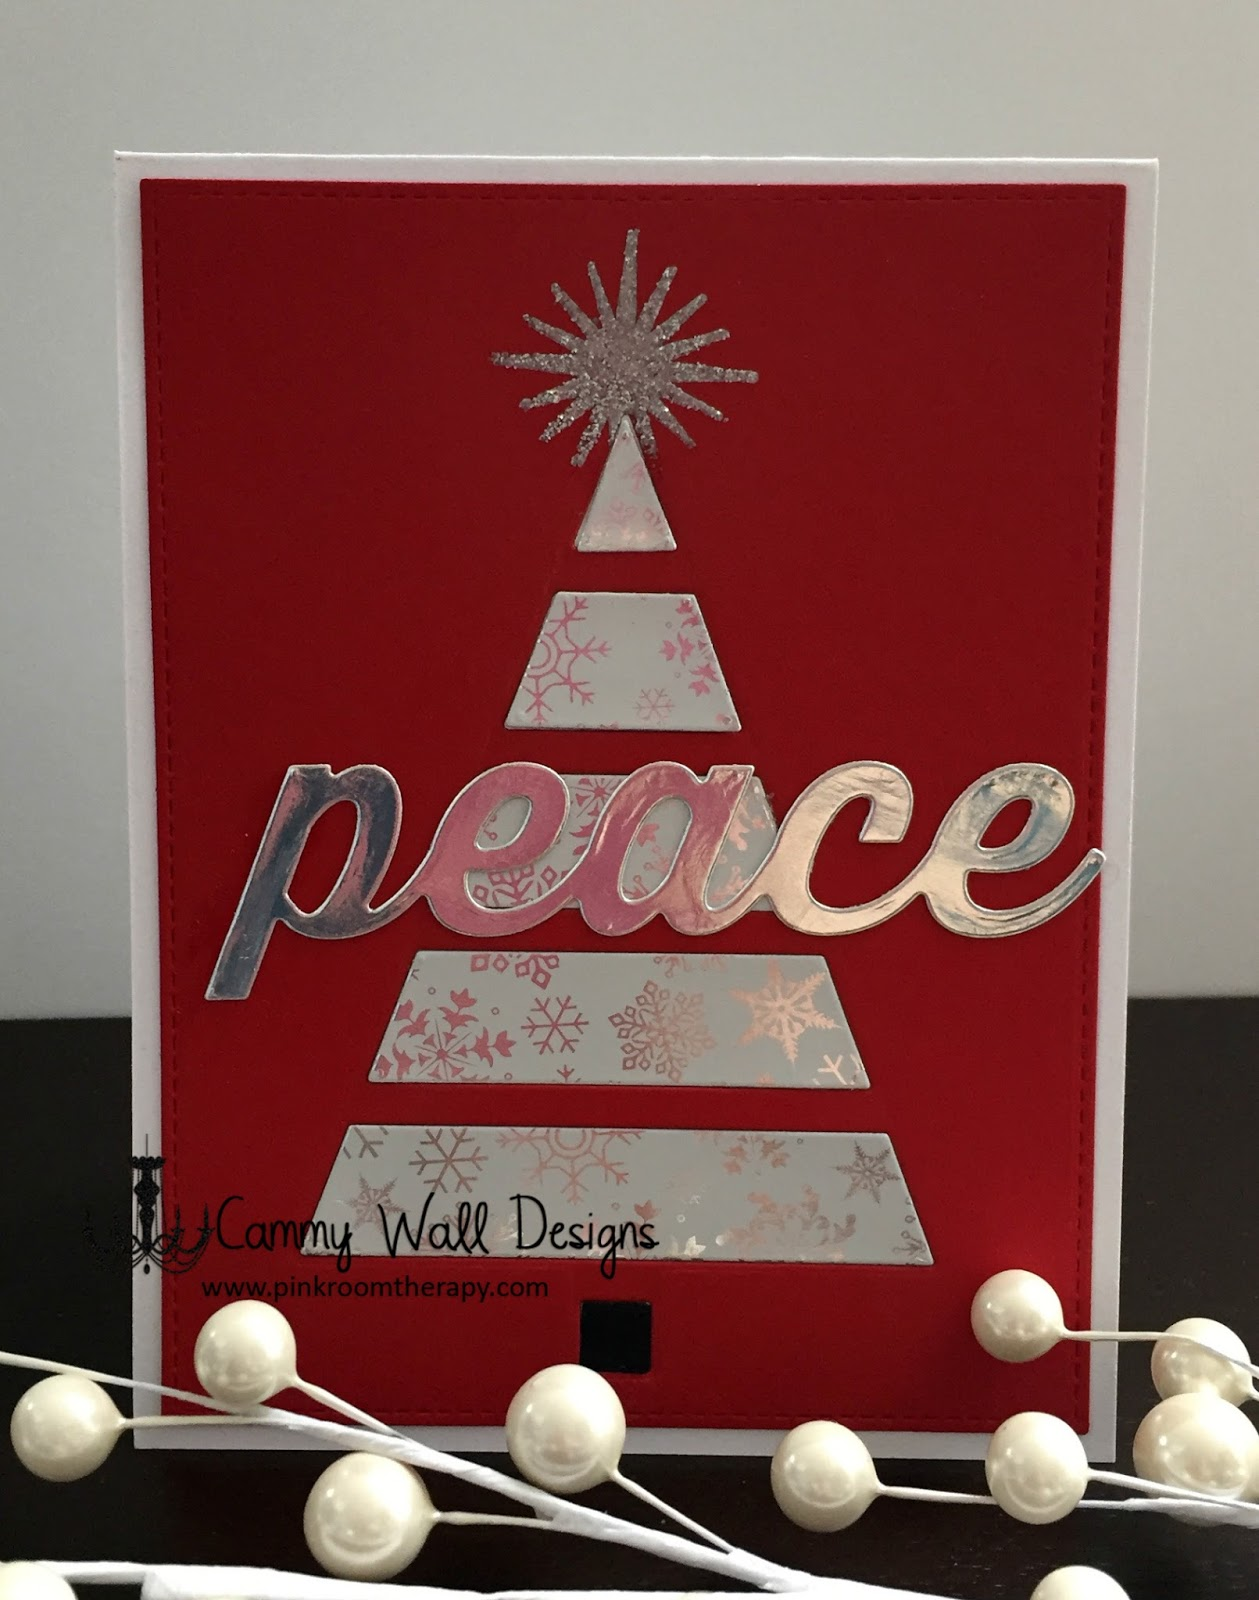 Peace Cutout Tree | Pink Room Therapy Designs